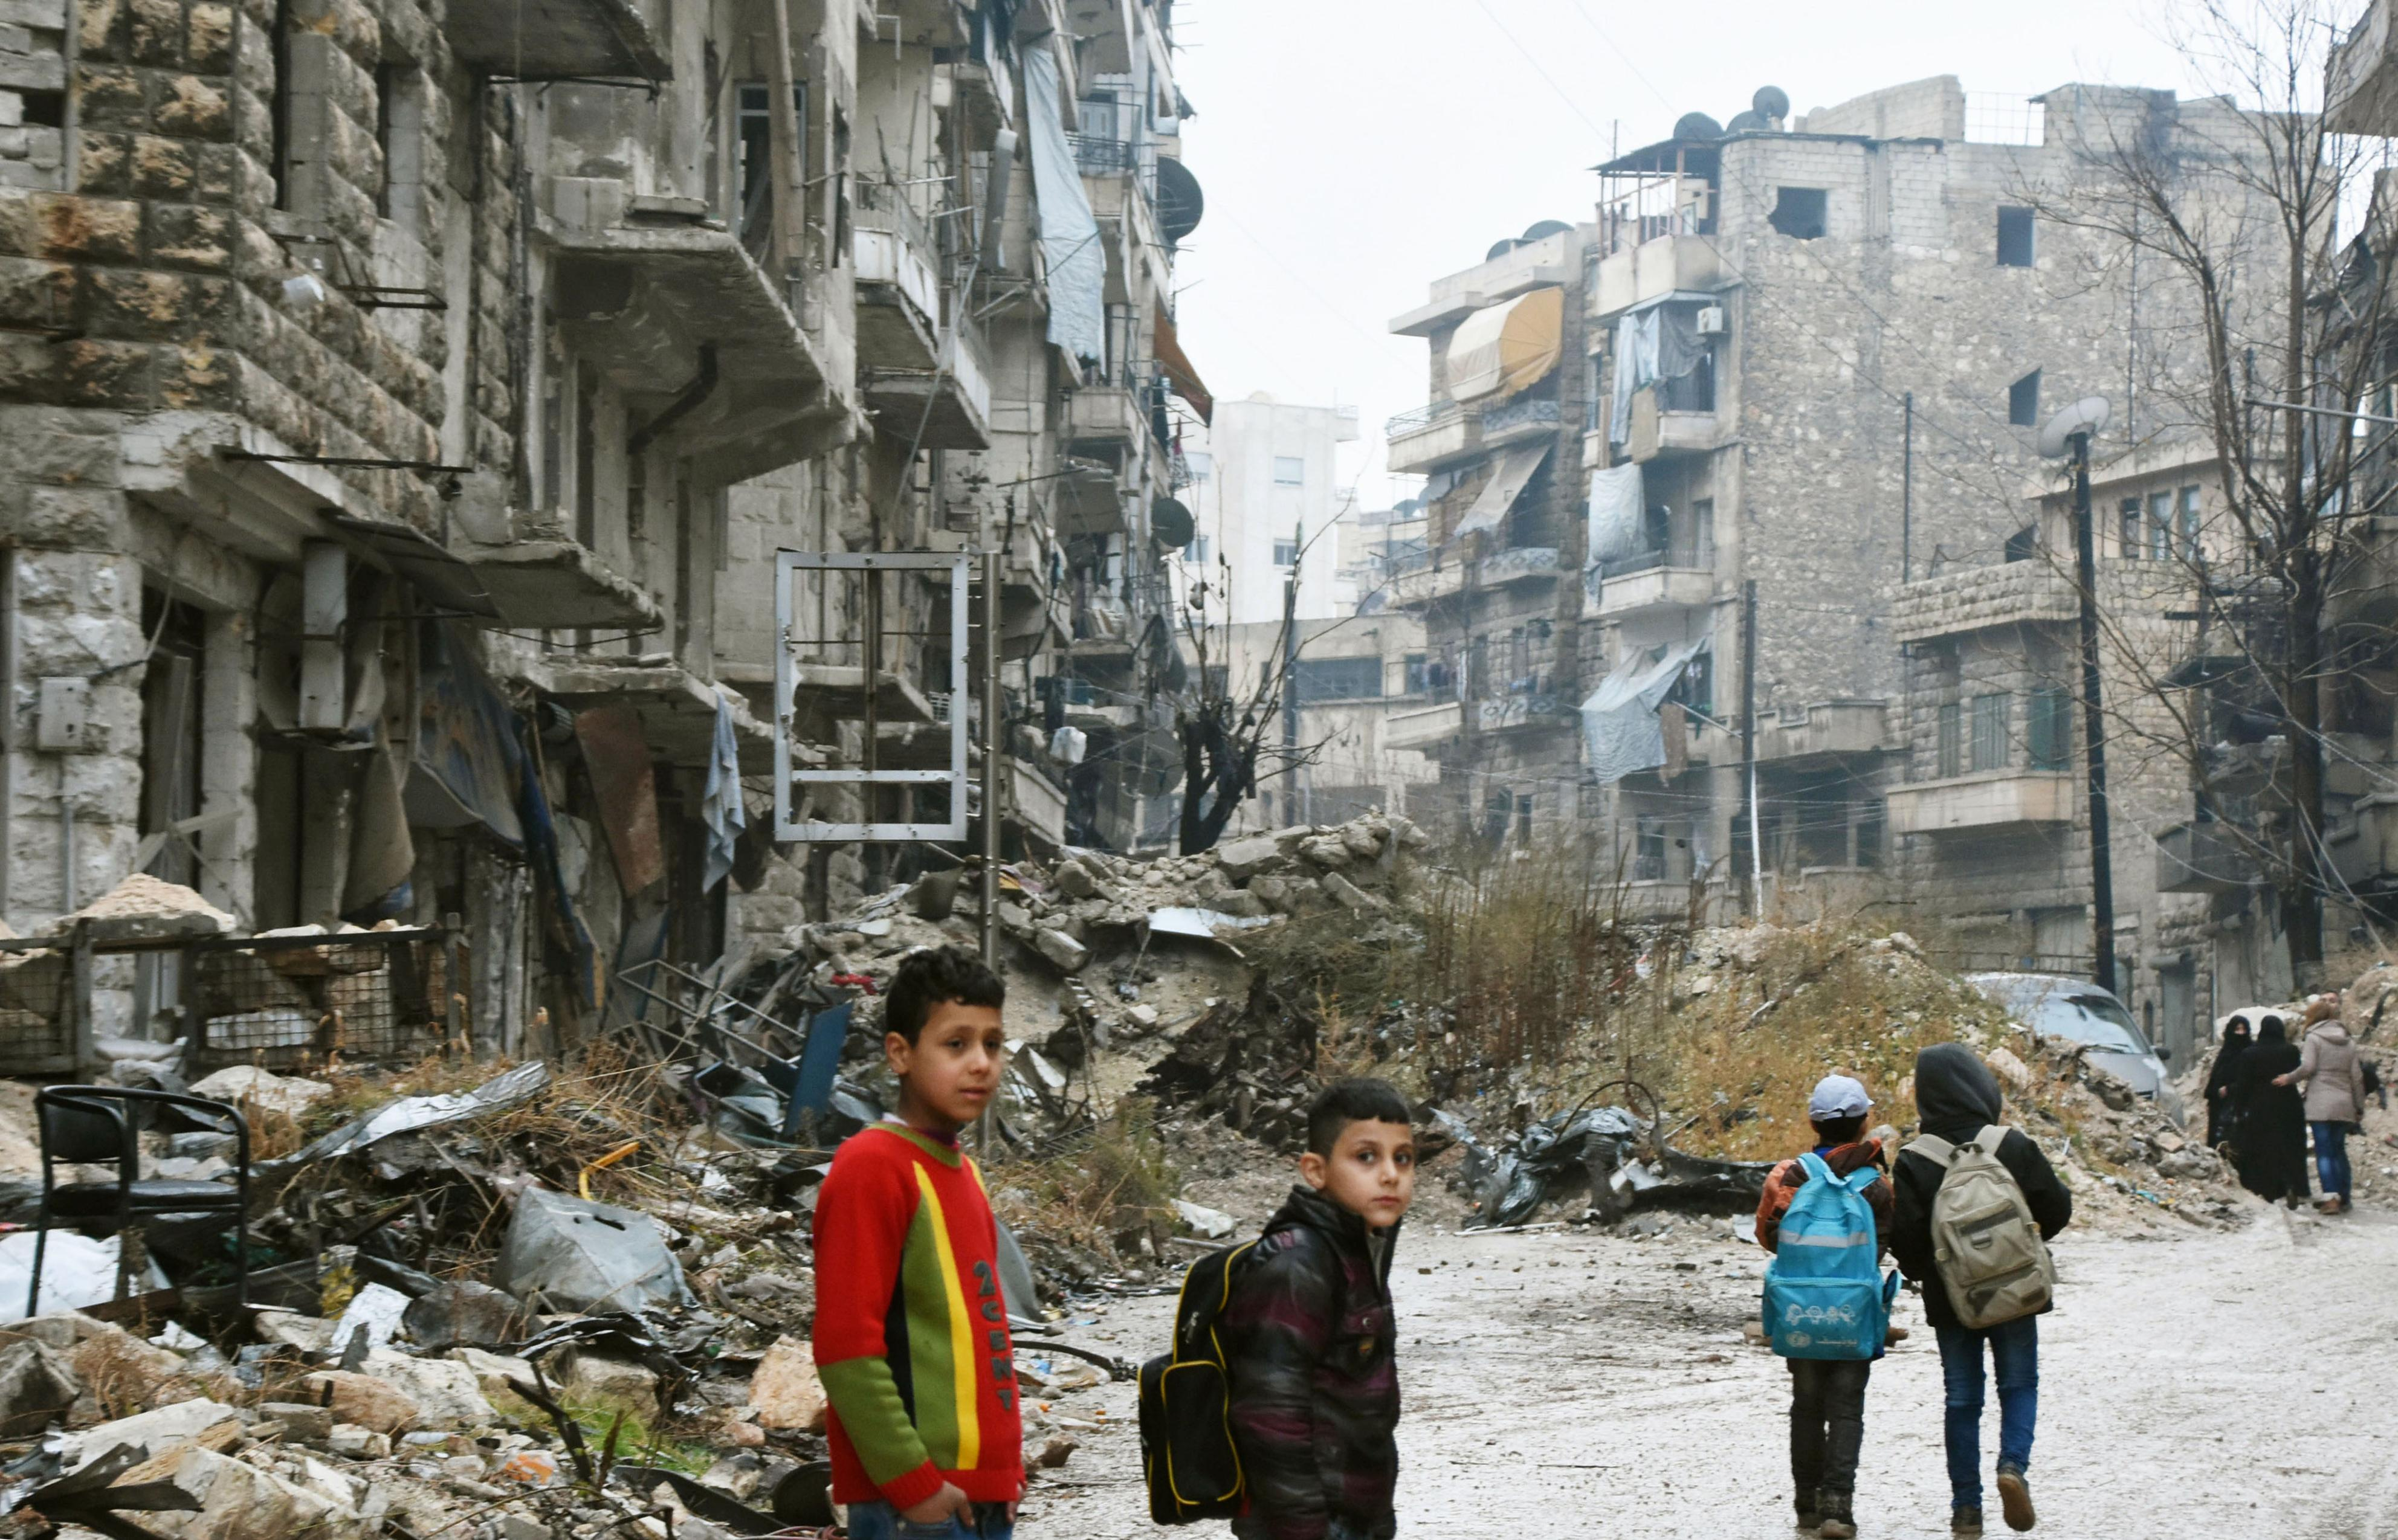 Children walk in a devastated area in the northern Syria city of Aleppo on Dec. 13, 2016, as troops loyal to the government of President Bashar al-Assad seemed poised to take complete control of the city that had been ruled by rebels. (Kyodo)